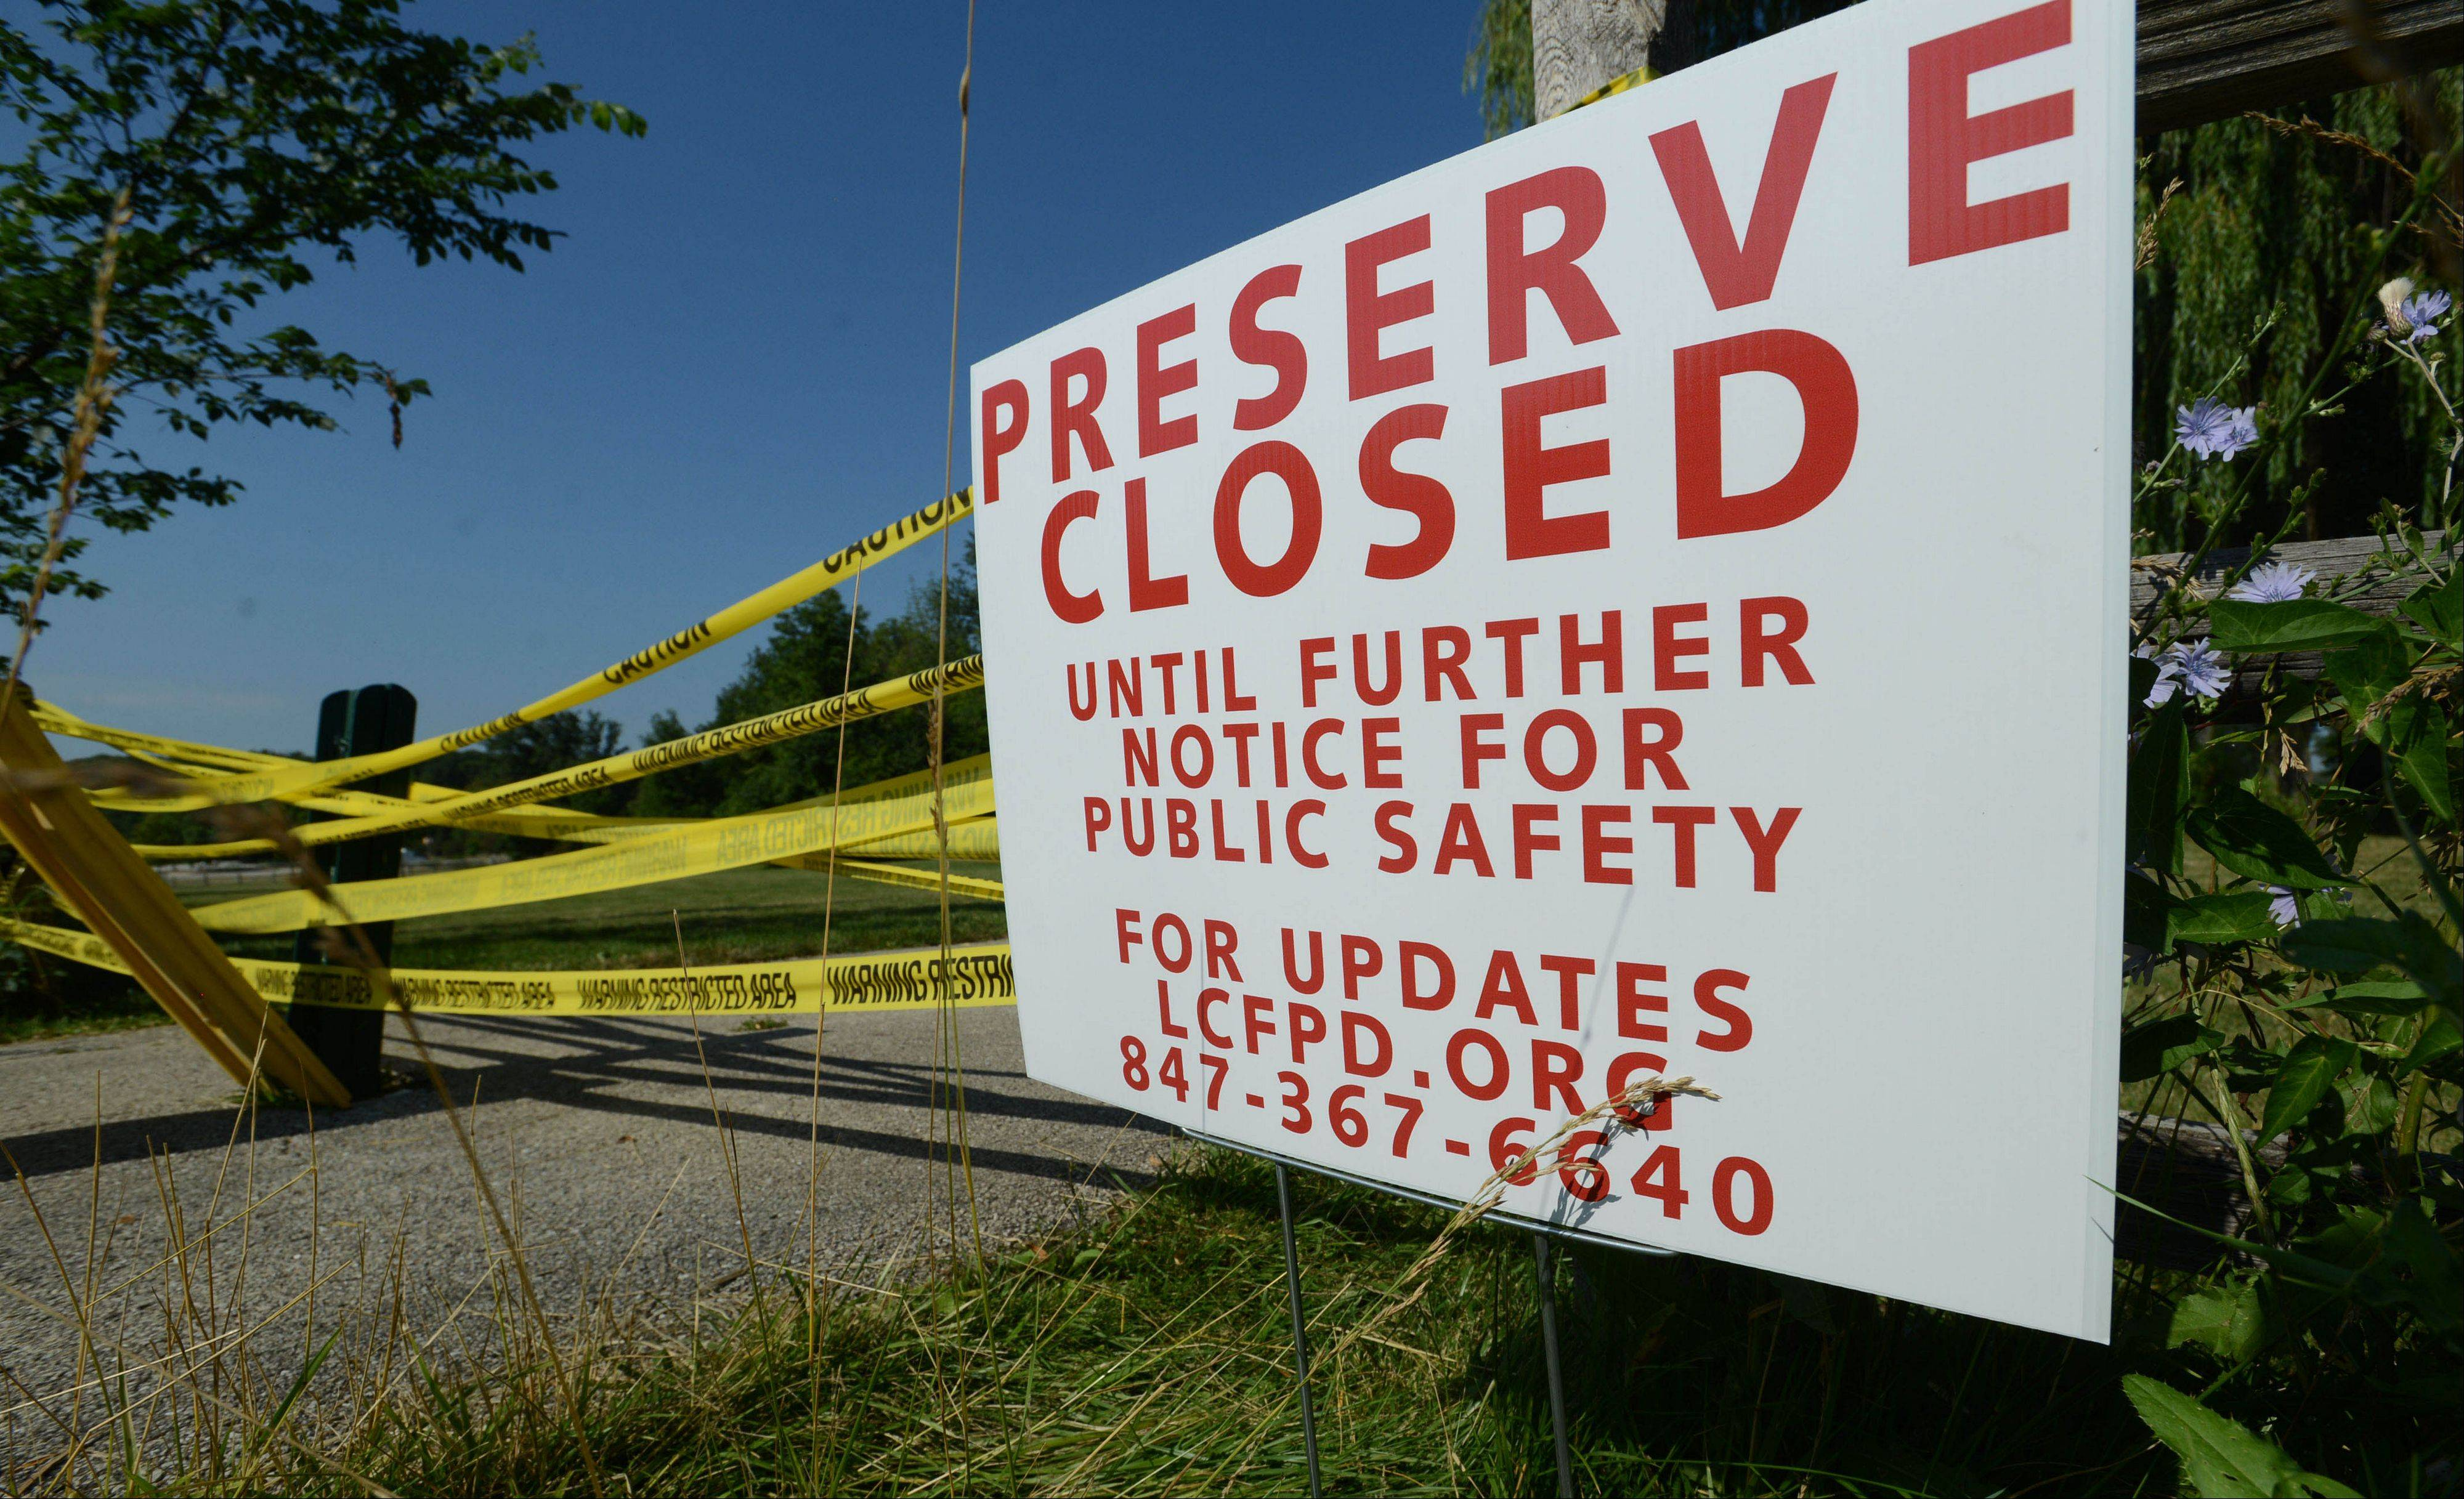 Independence Grove Forest Preserve near Libertyville was closed Wednesday and will remain closed until further notice following a bomb threat received Tuesday night. Lake County Forest Preserve District Ranger Police said the park will not reopen until a complete investigation of the threat is completed.